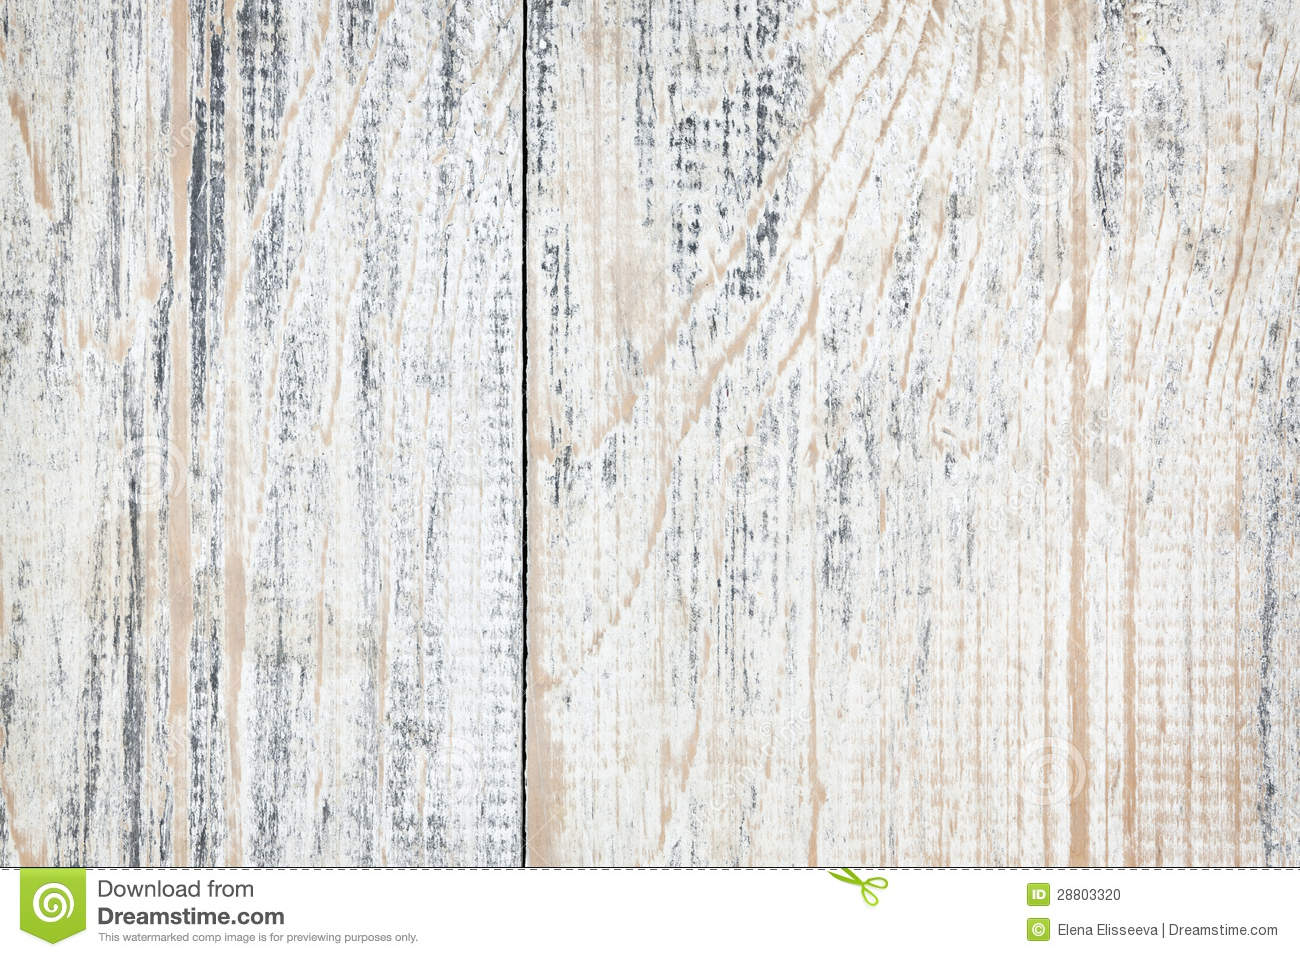 Project further Victorian Style Garden Room Linked To A Timeless Kitchen besides Stock Photo Distressed Painted Wood Background Image28803320 as well Three Blue Abstract Backgrounds Or Water Texture in addition Wall Textures. on textured painted walls